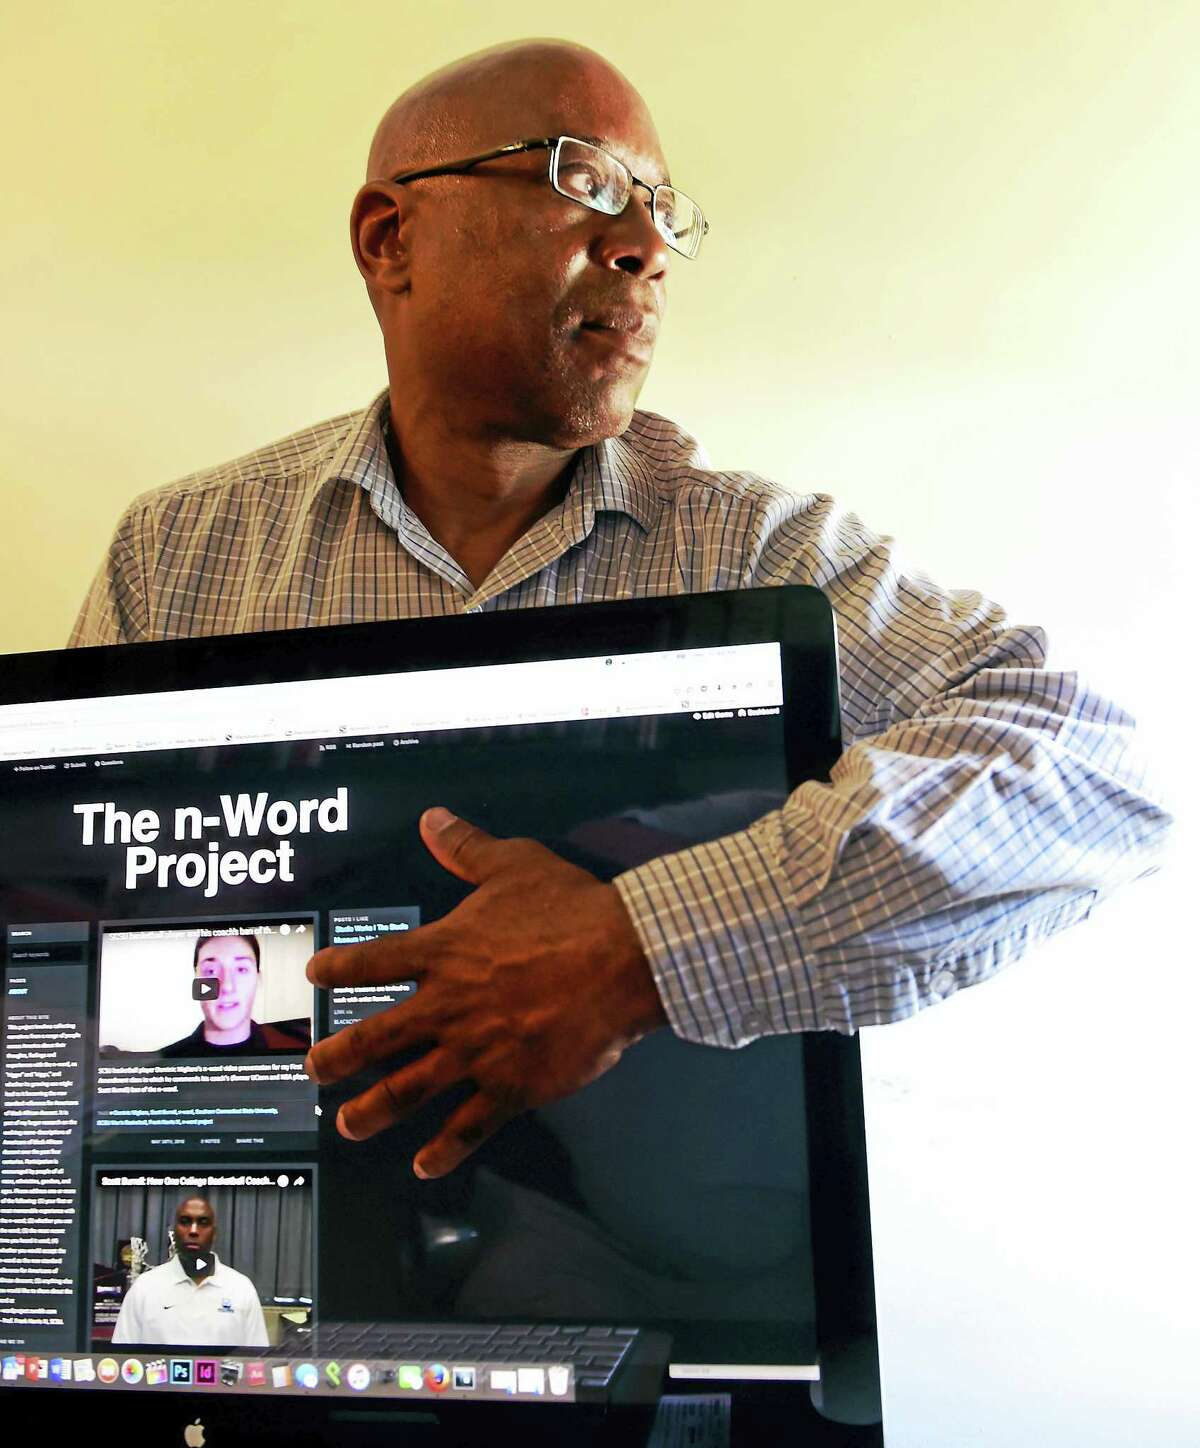 """Frank Harris, Southern Connecticut State University journalism professor, explores the n-word through his n-Word Project, which involves collecting narratives from a range of people across America, about their thoughts, feelings and experiences with the n-word, as """"nigger"""" and """"nigga."""""""